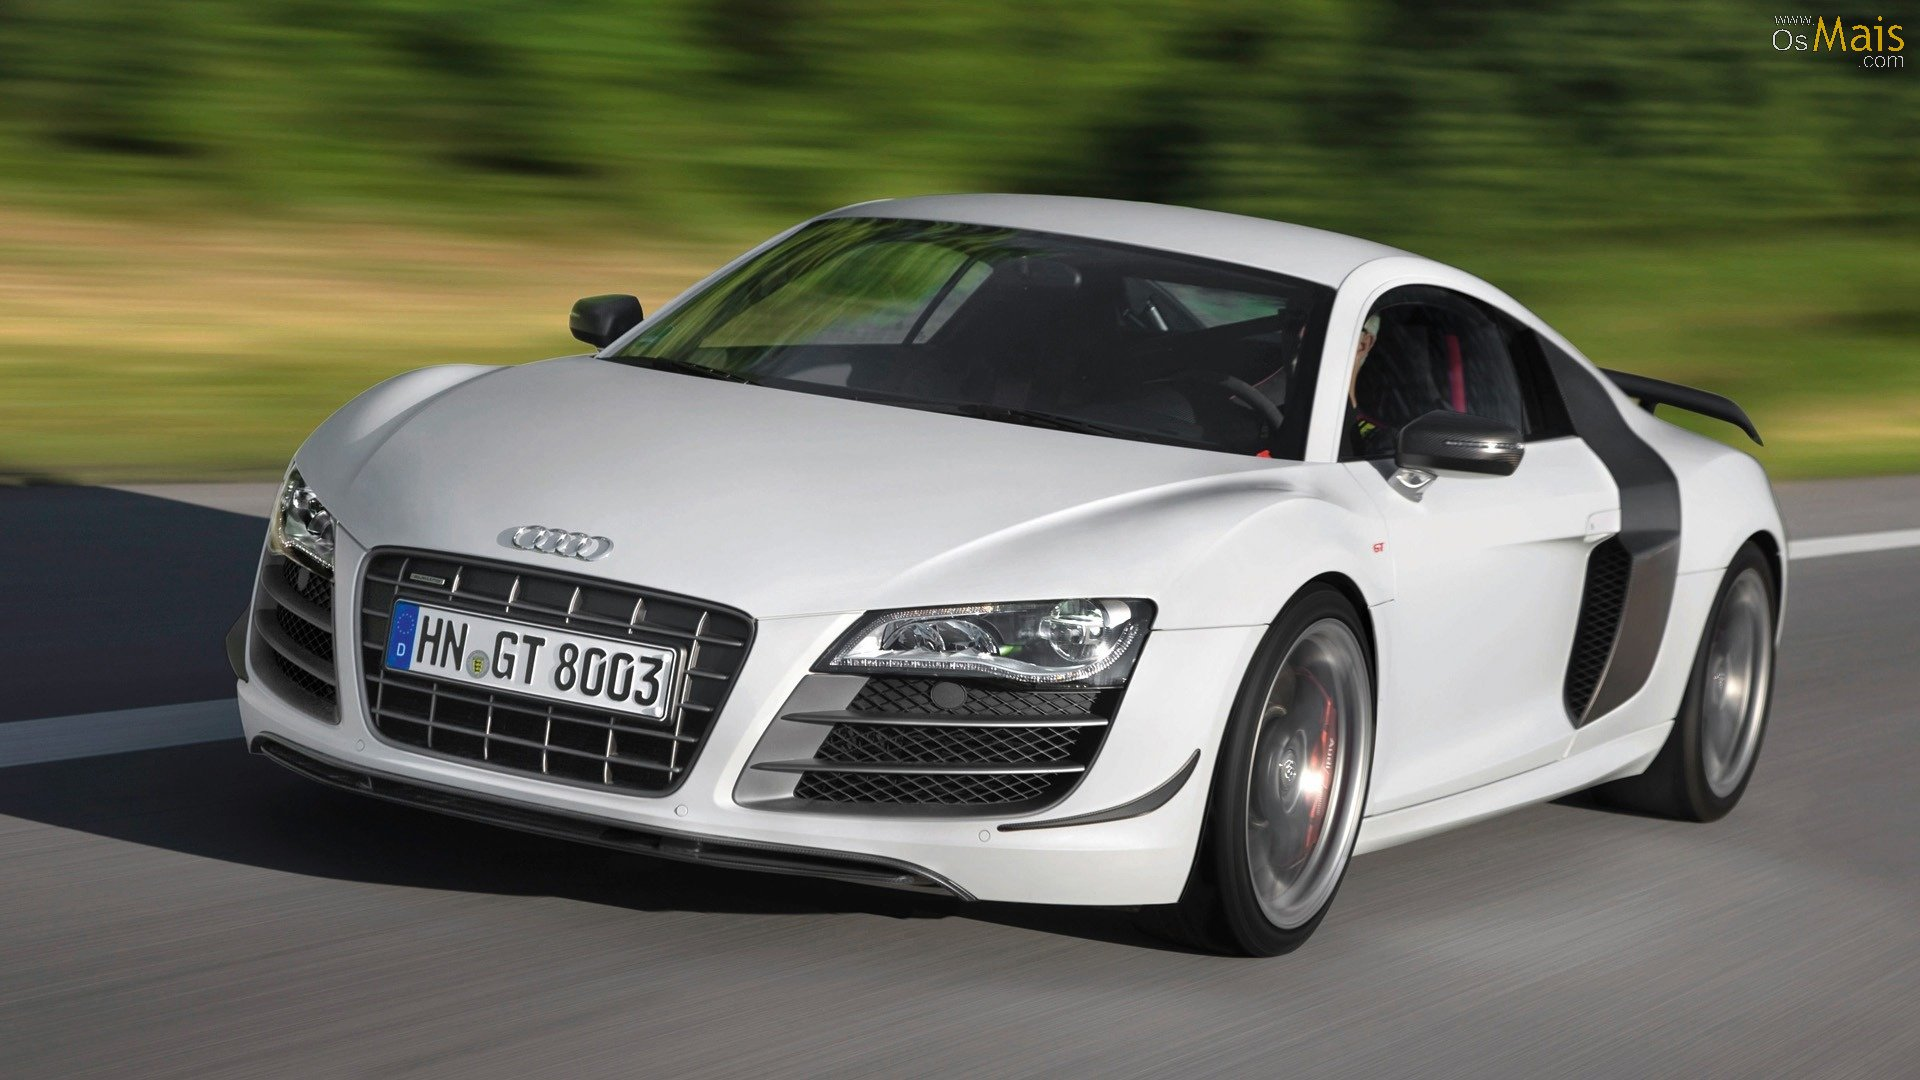 Audi R8   papel de paredewallpaperAudi R81920x1080wallpapers 1920x1080